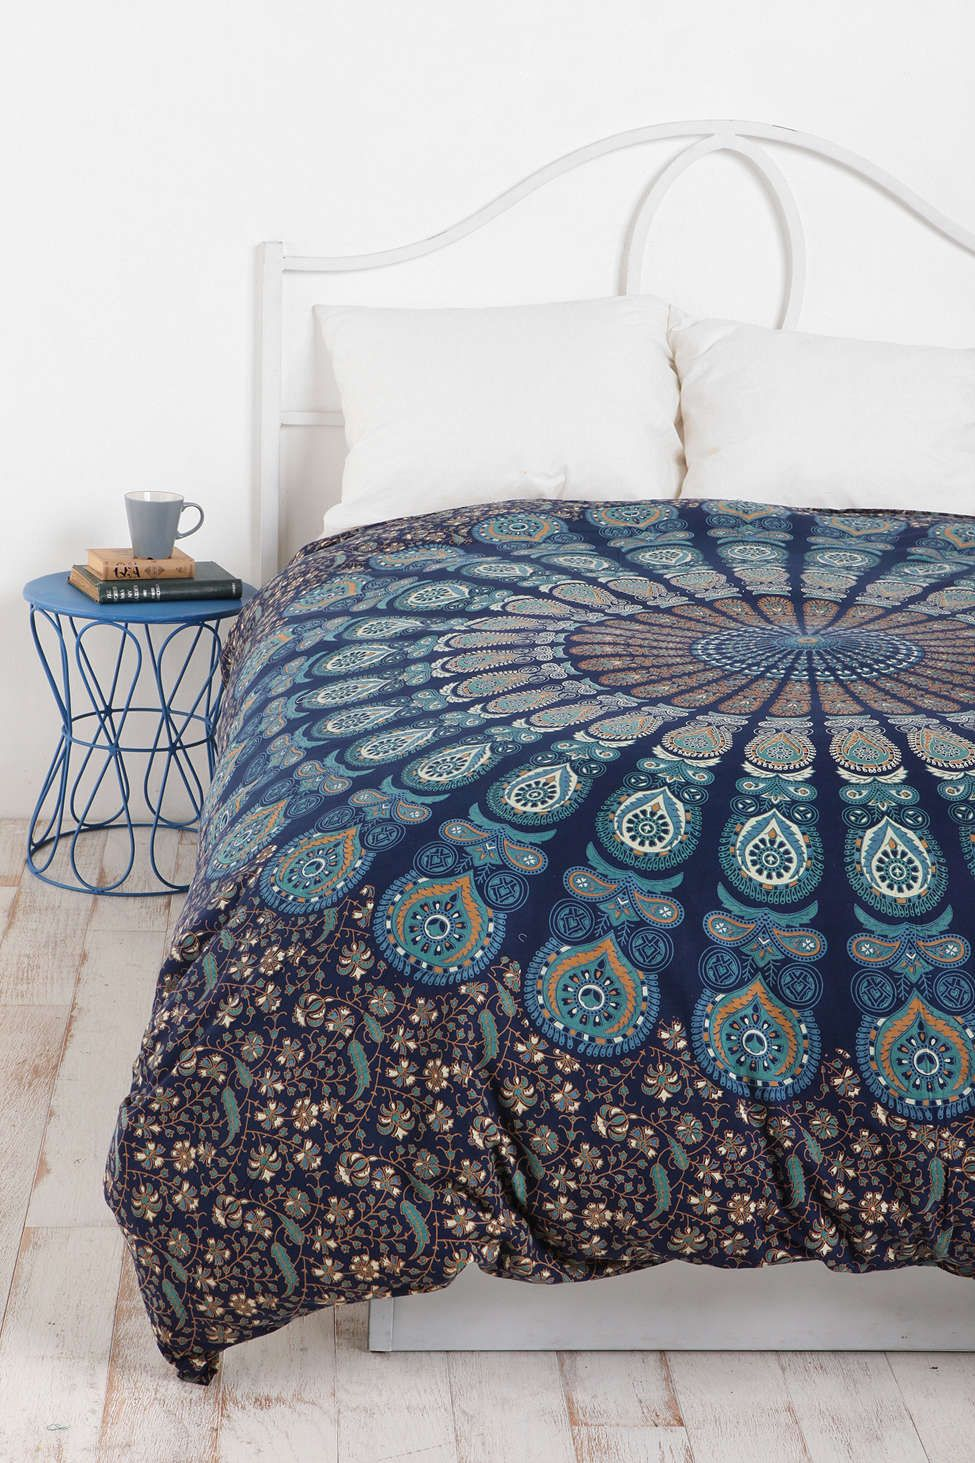 comforter xl bedding farah bohemian cover thinking and devi covers plum bow tapestry medallion duvets kasbah floral out twin duvet cheap magical worn carpet outfitters urban